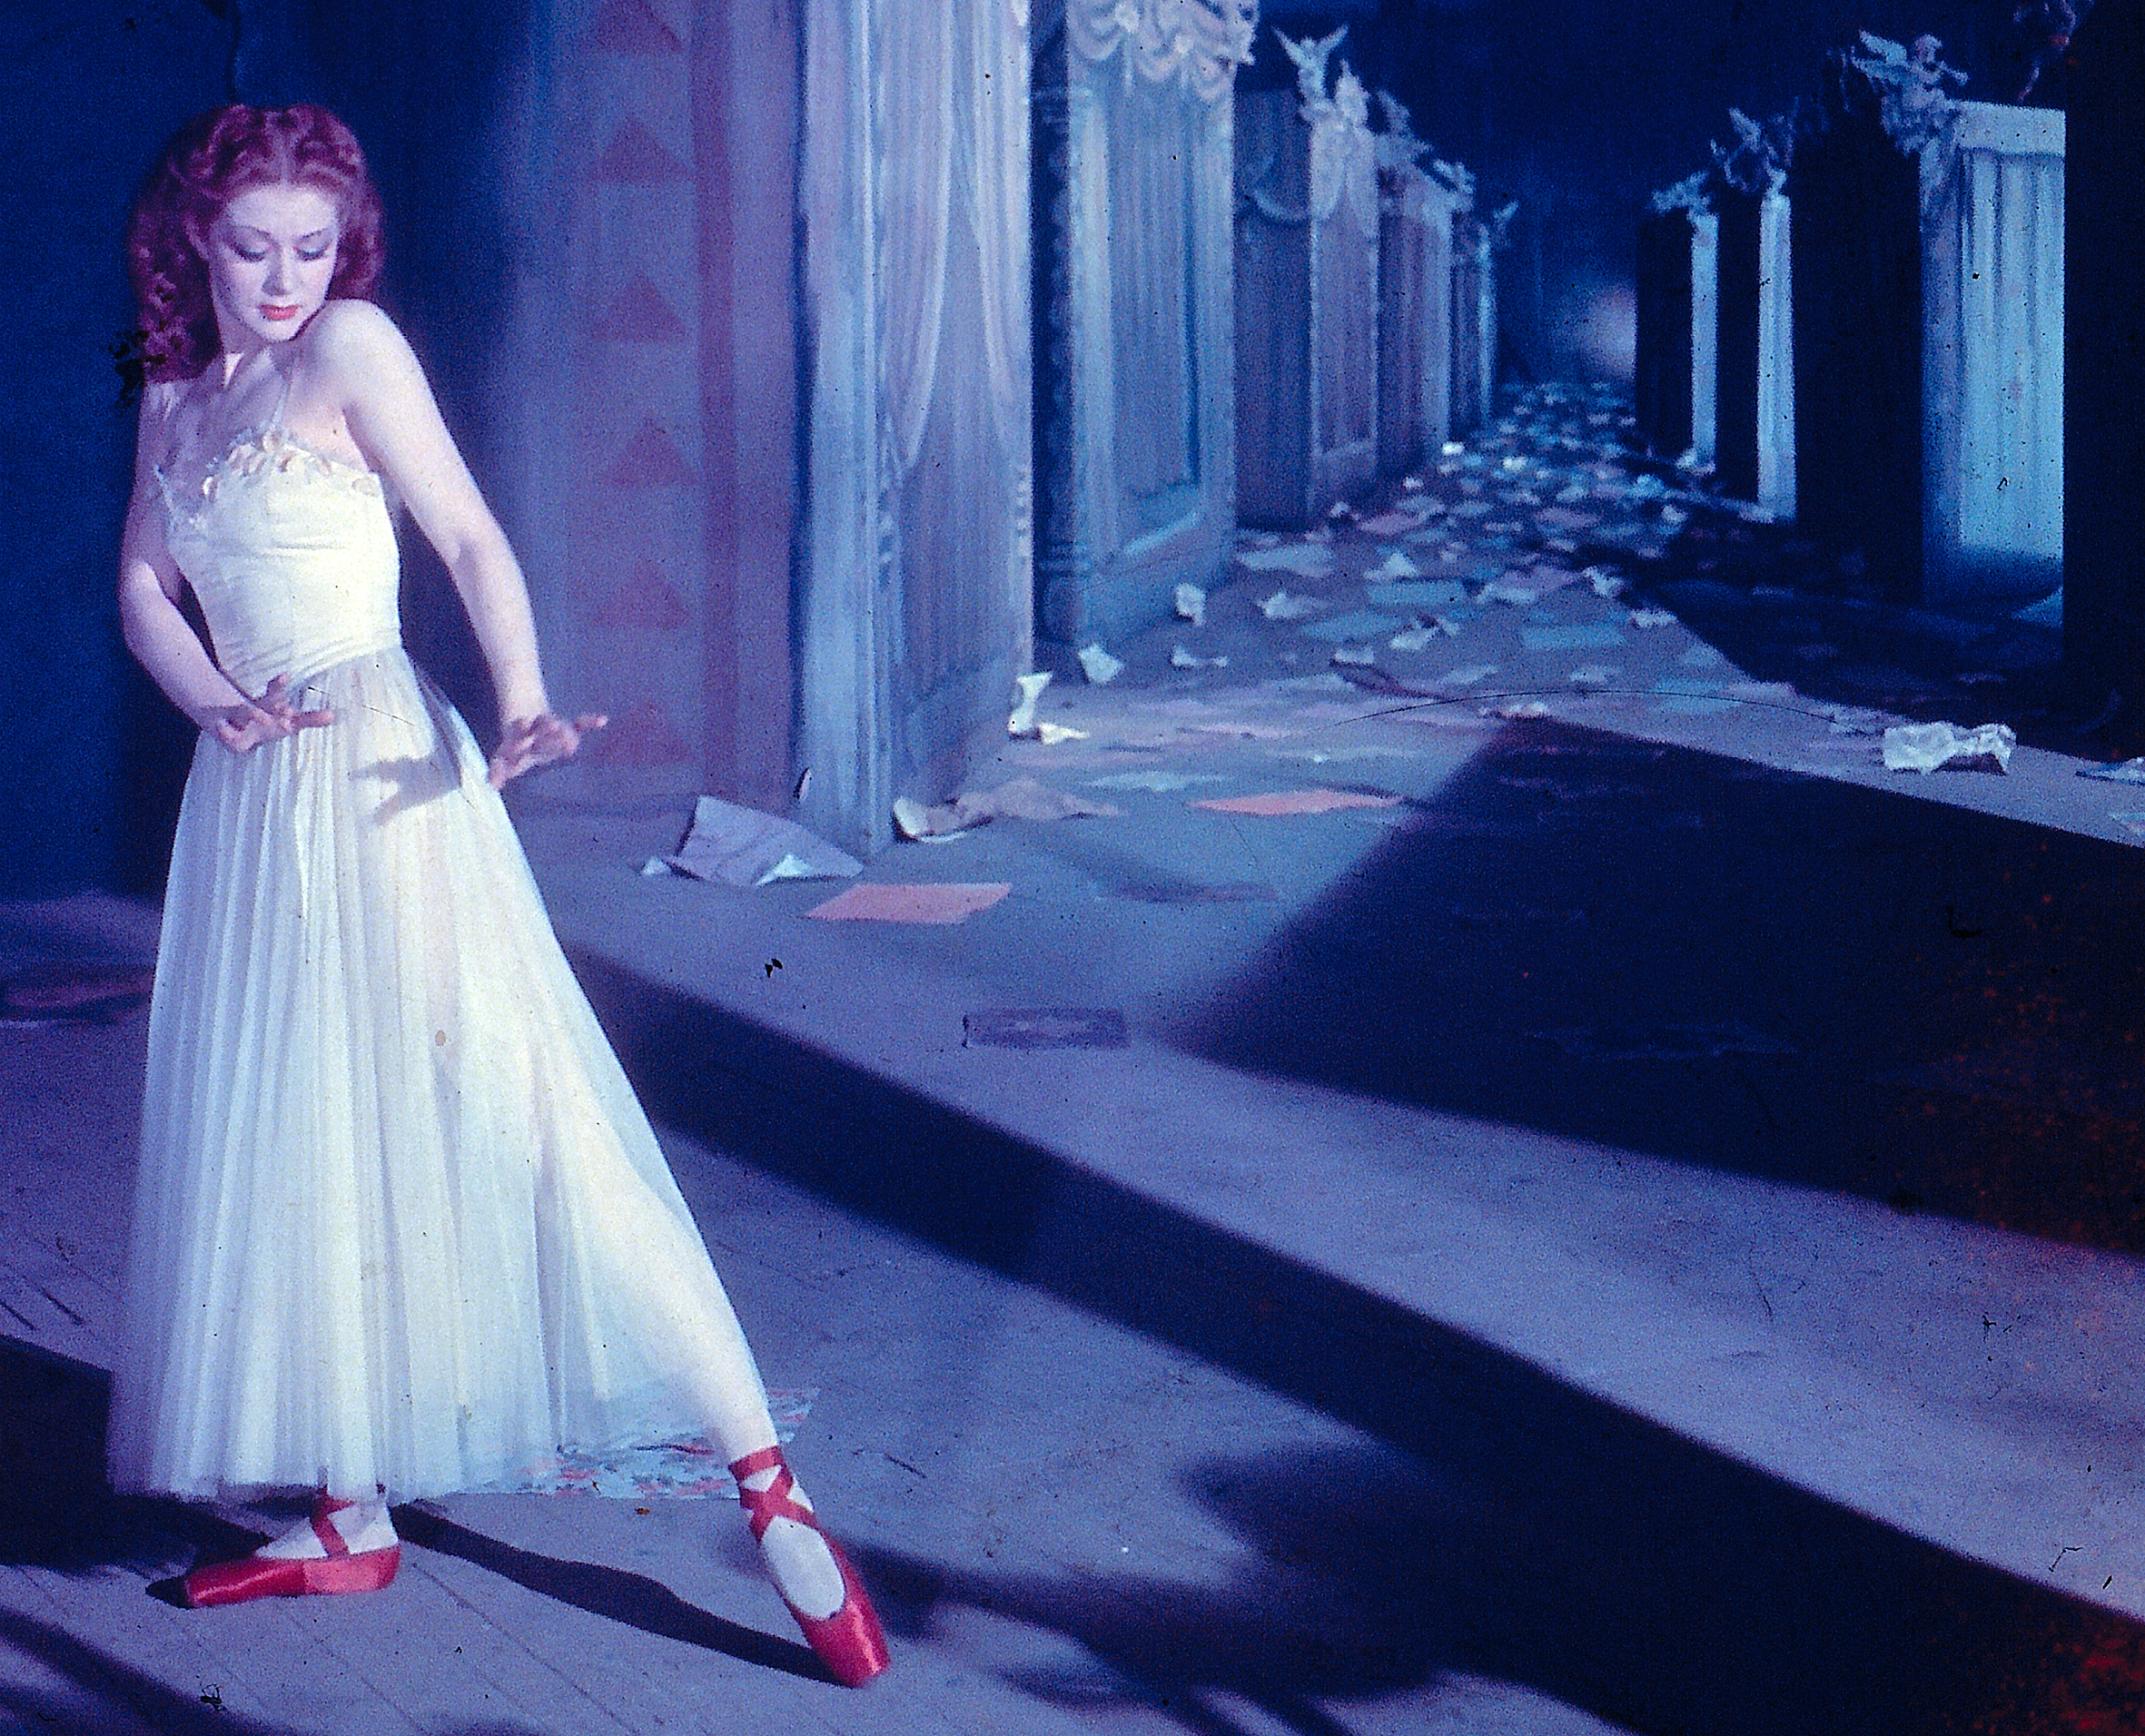 The Red Shoes: Finding the fantastical in the mundane | Pop Verse